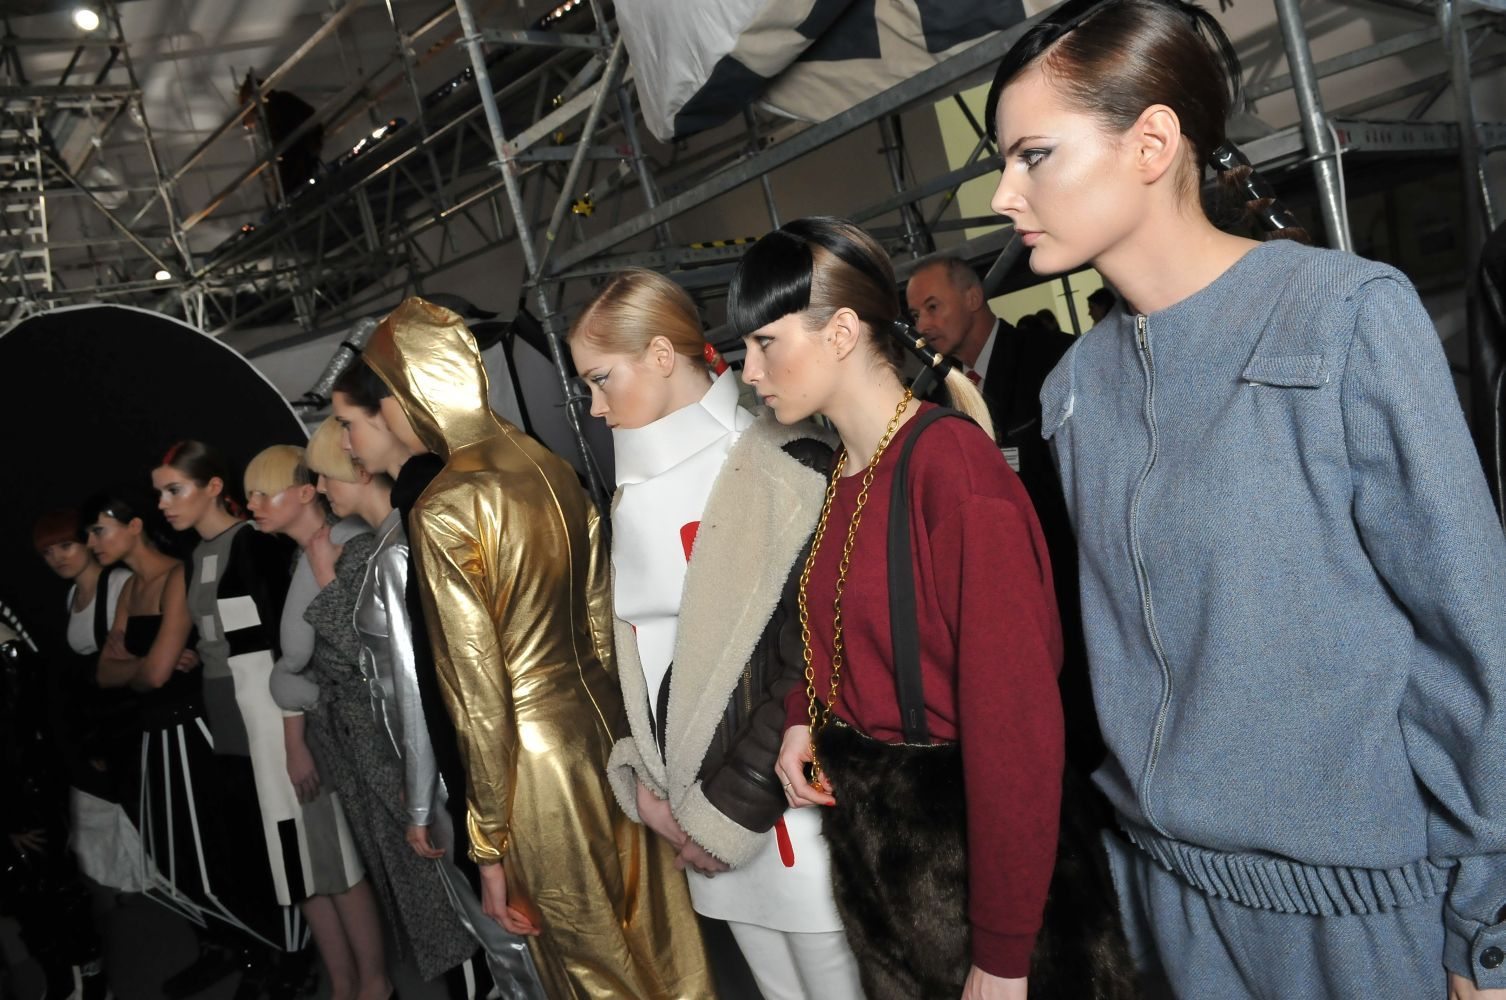 Larger Than Life Space Suit Houses Fashion Show: 003570.jpg